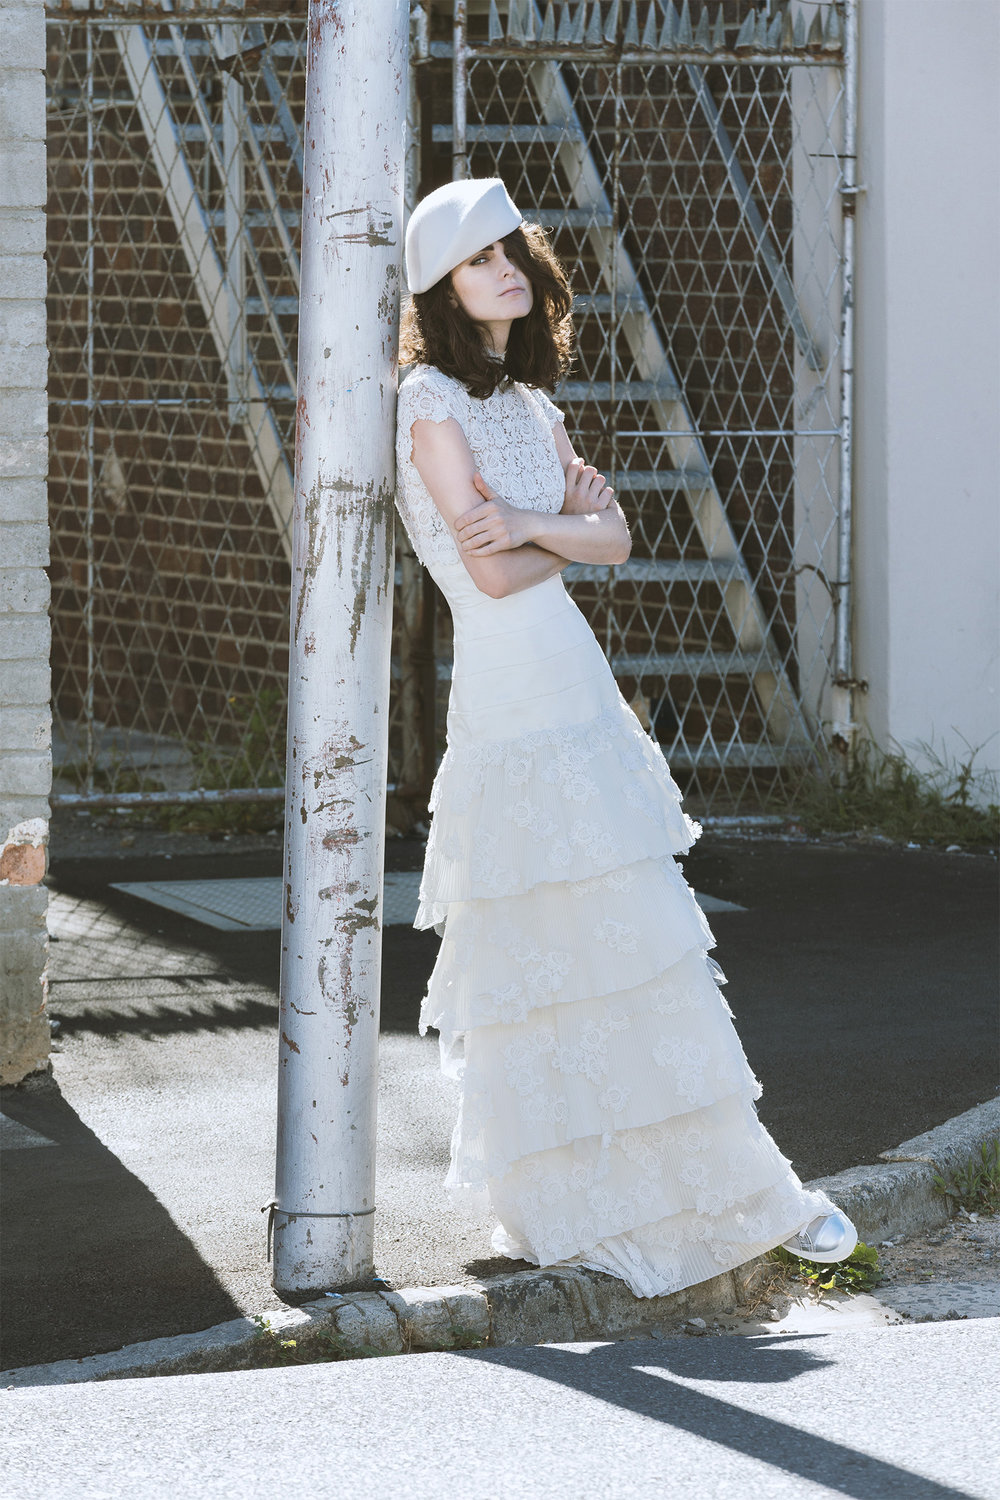 Victorian-inspired Guipure lace dress, Molteno Creations; beret, Crystal Birch; shoes, Superga